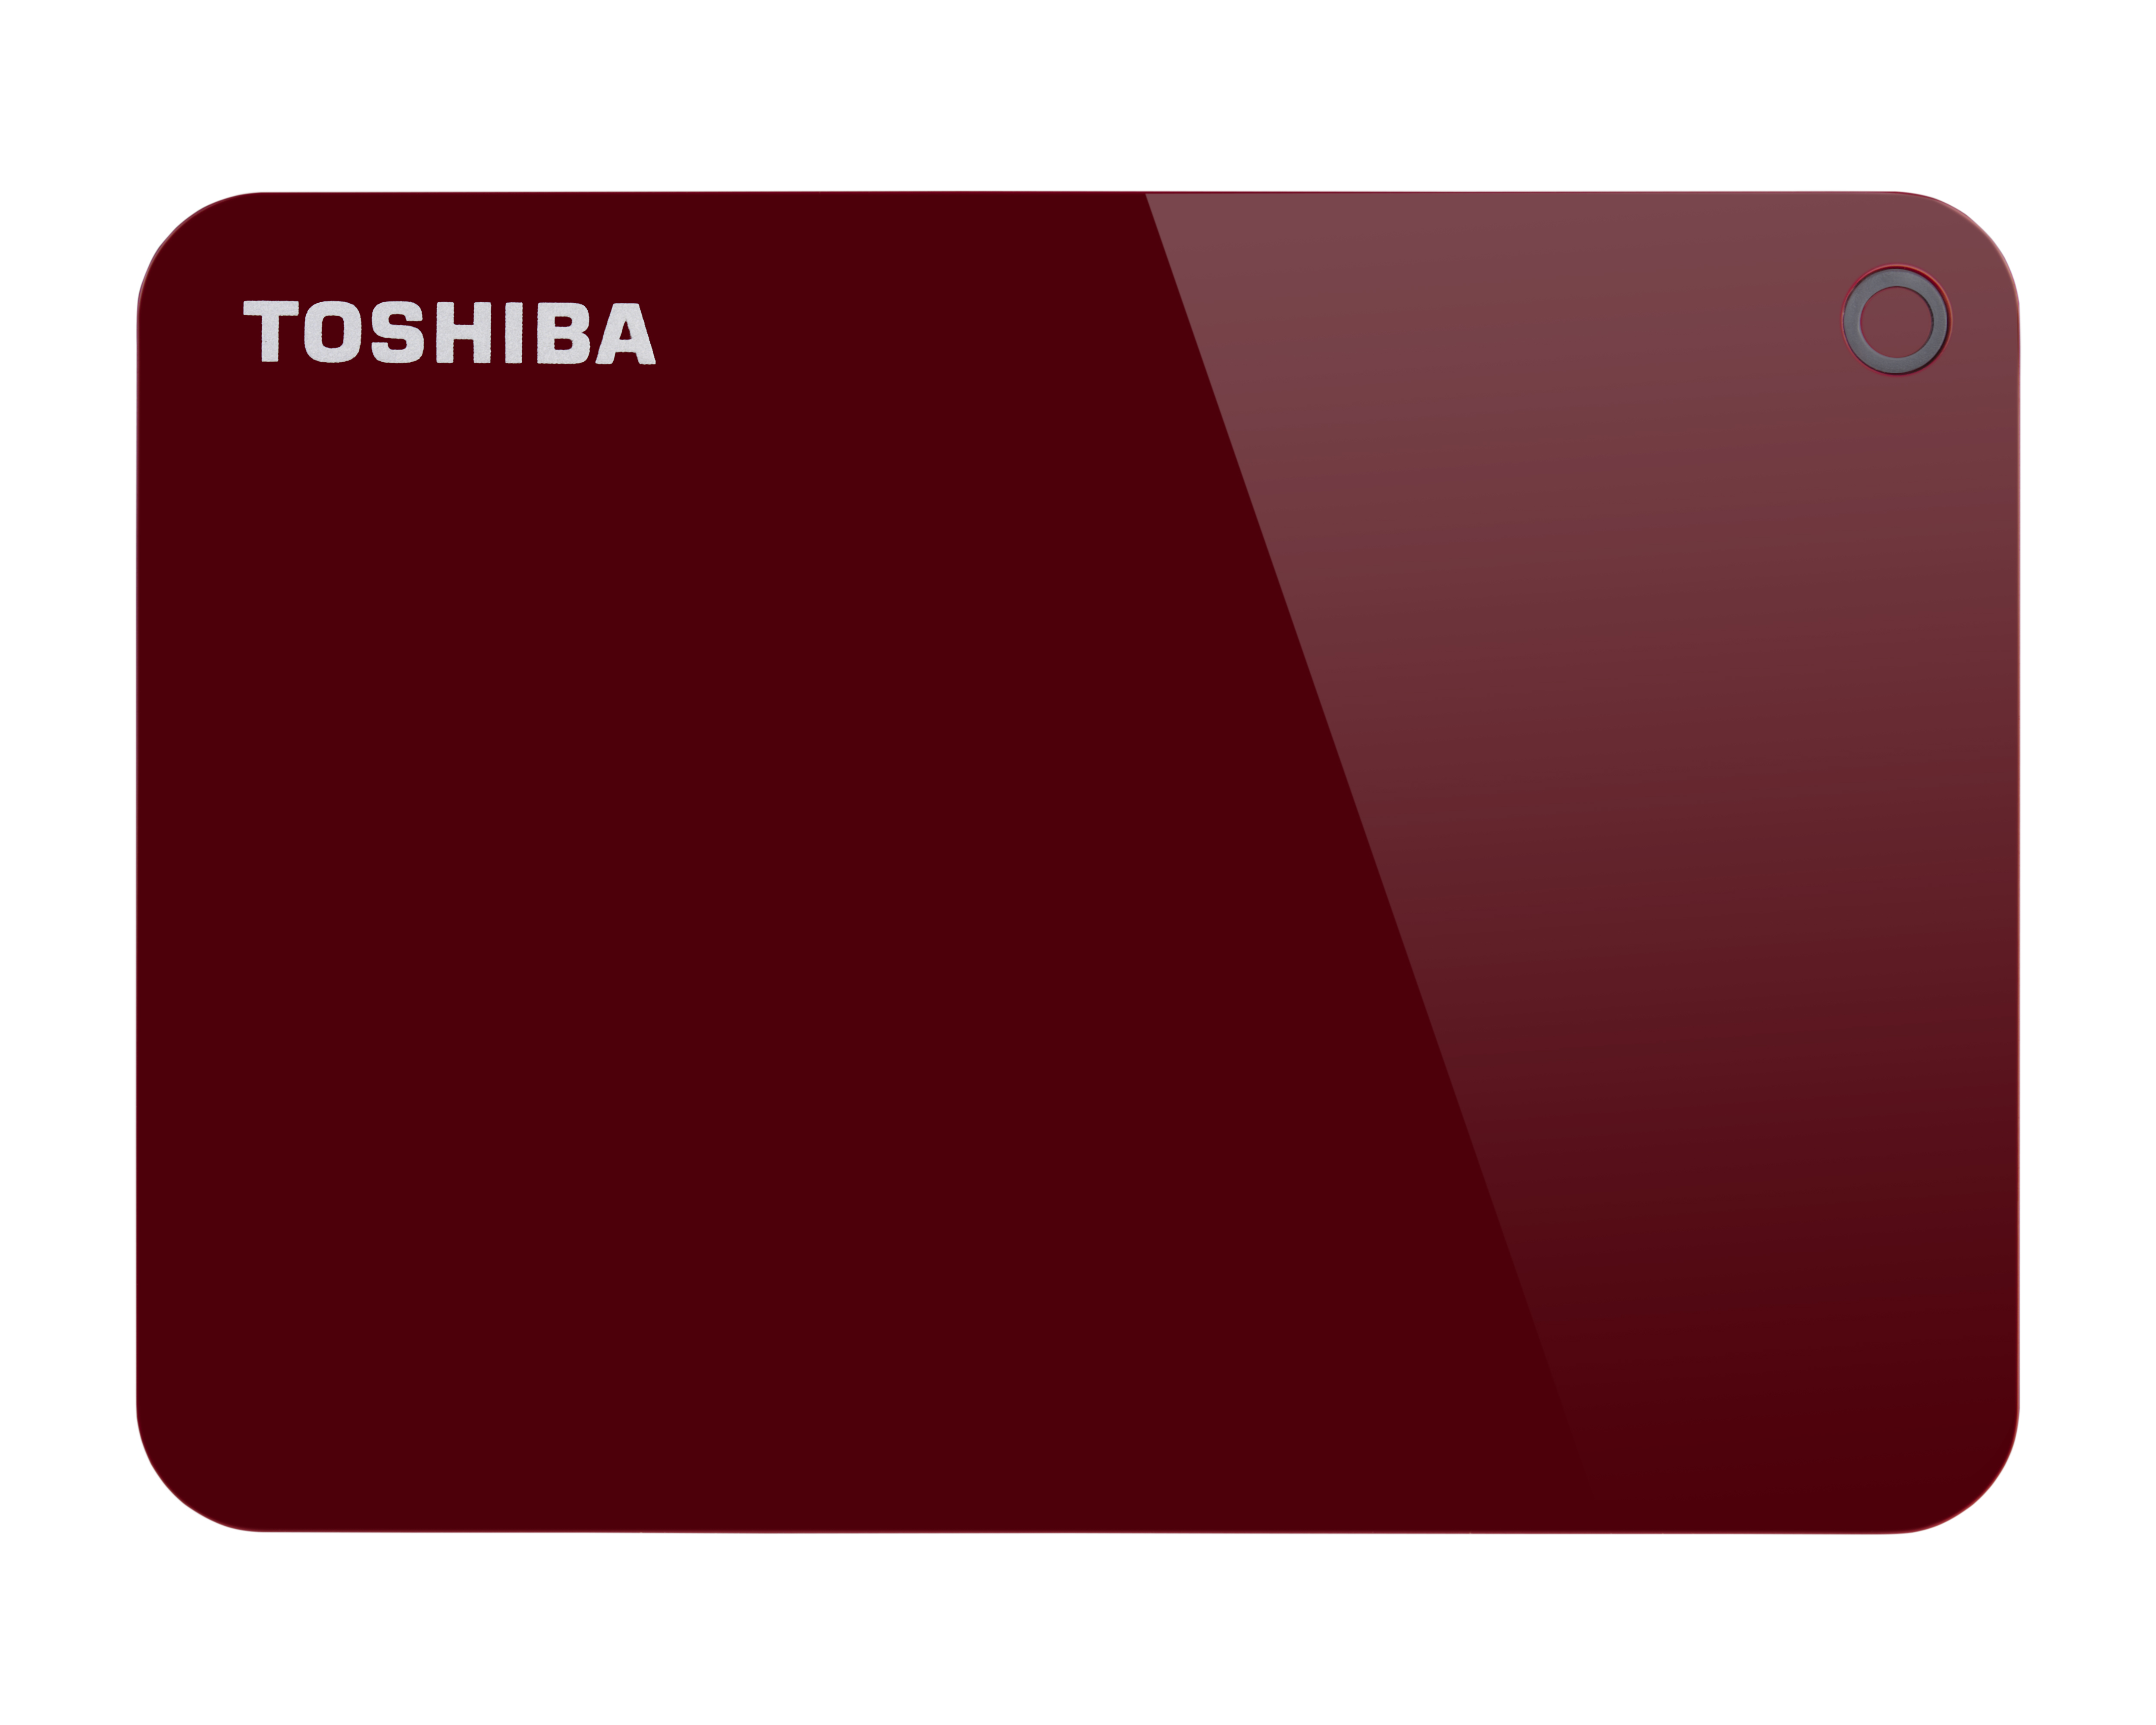 Toshiba Canvio Advance 2tb Portable External Hard Drive Usb 30 Red Ideal Circuit Breaker Lockout System Prevents Unauthorized Use Hdtc920xr3aa